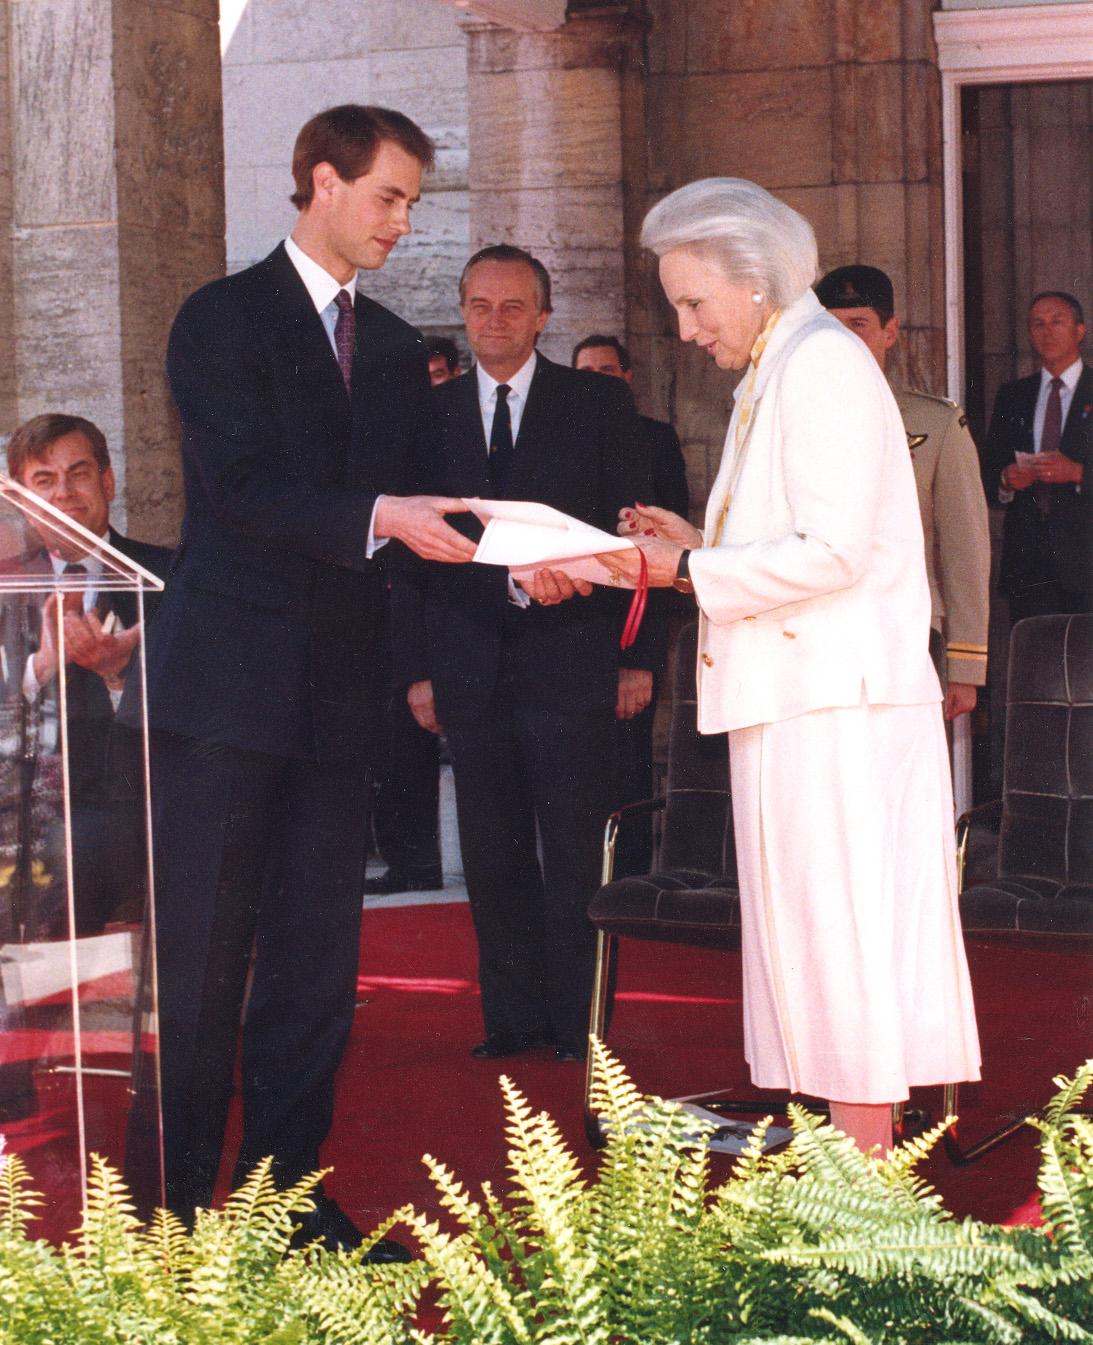 Governor General Jeanne Sauvé receiving the Royal Letters Patent from His Royal Highness the Prince Edward at Rideau Hall on June 4, 1988